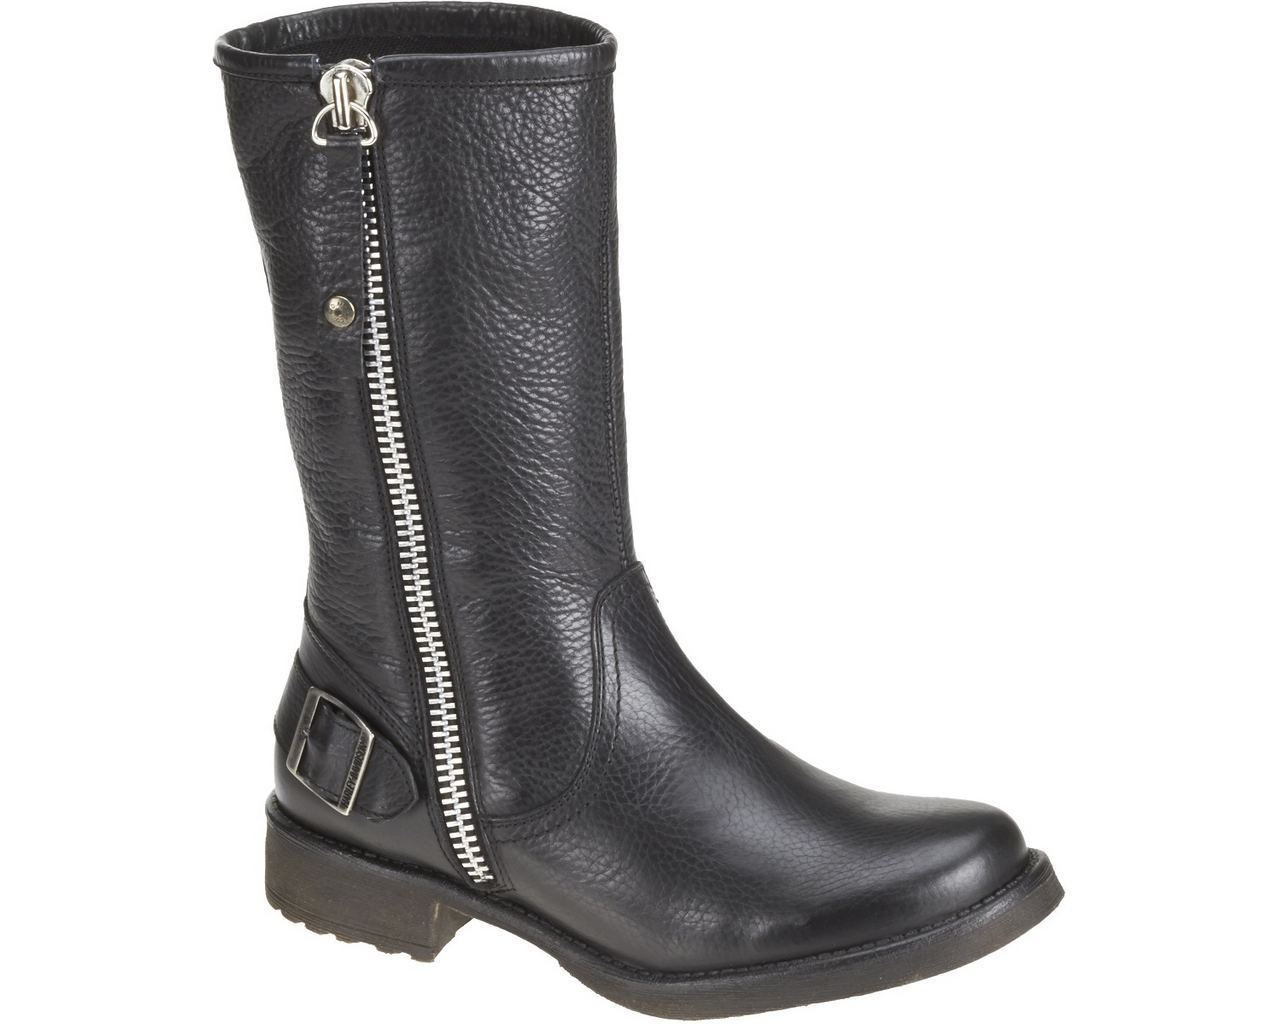 harley davidson baisley leather motorcycle boots